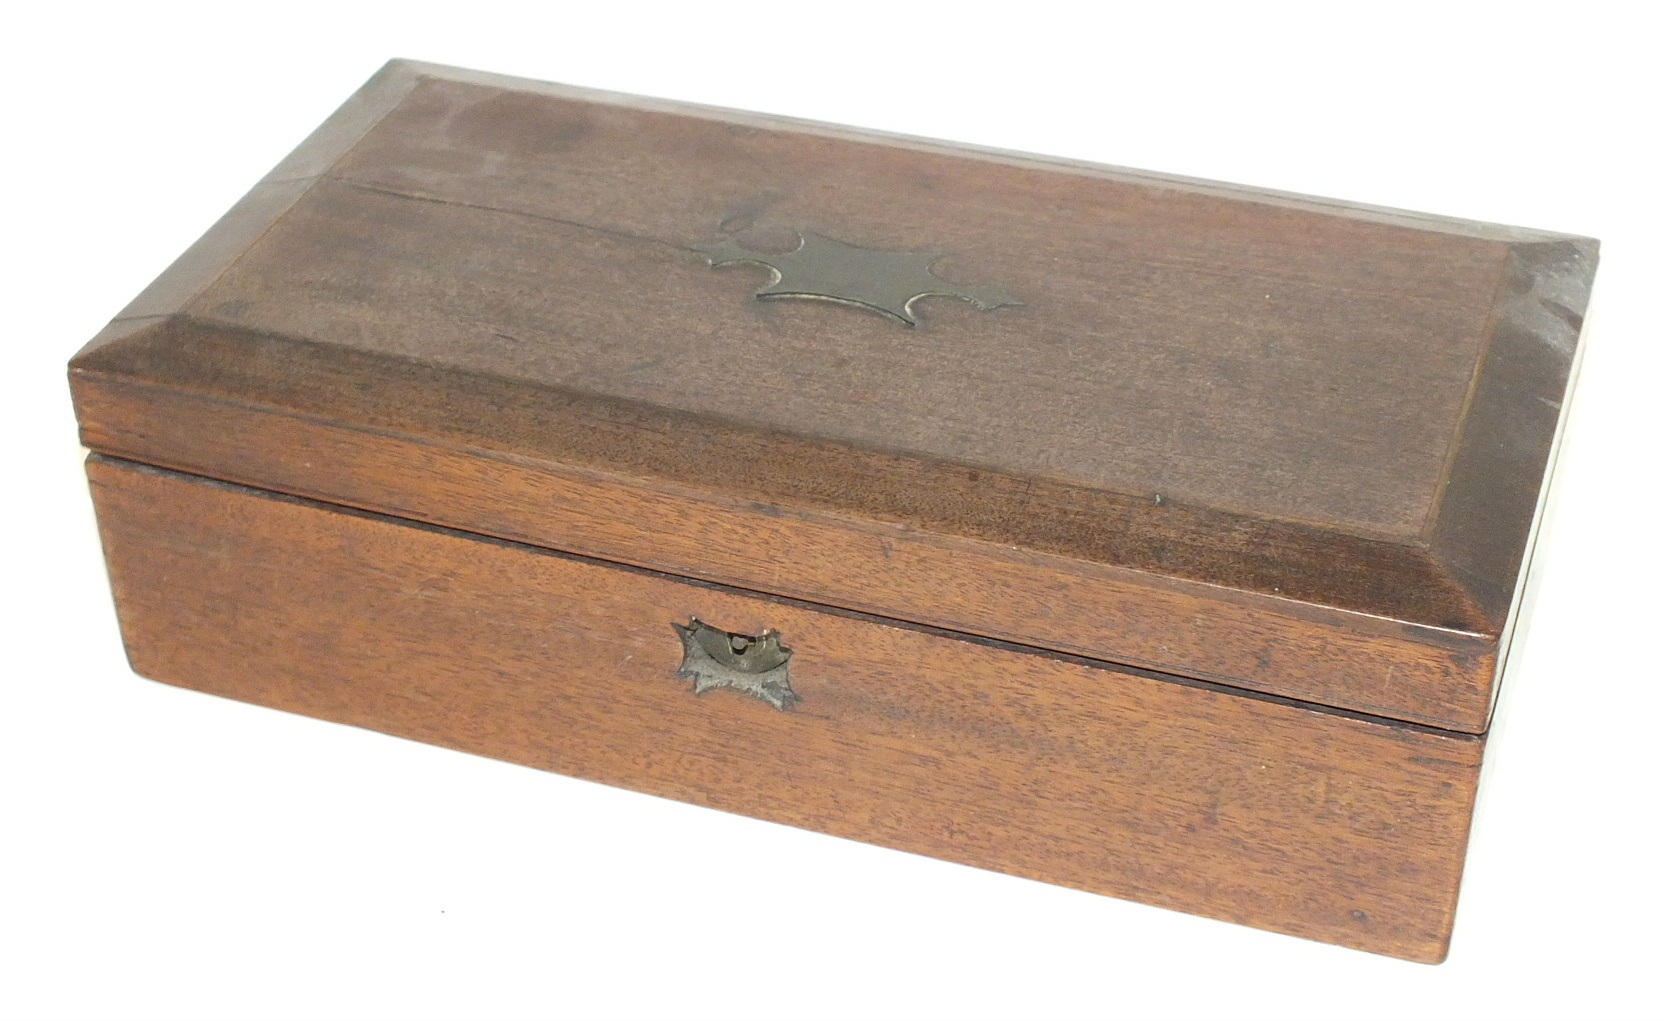 A late-Victorian 'Large Improved Compound' monocular travelling microscope, in fitted box with - Image 2 of 2